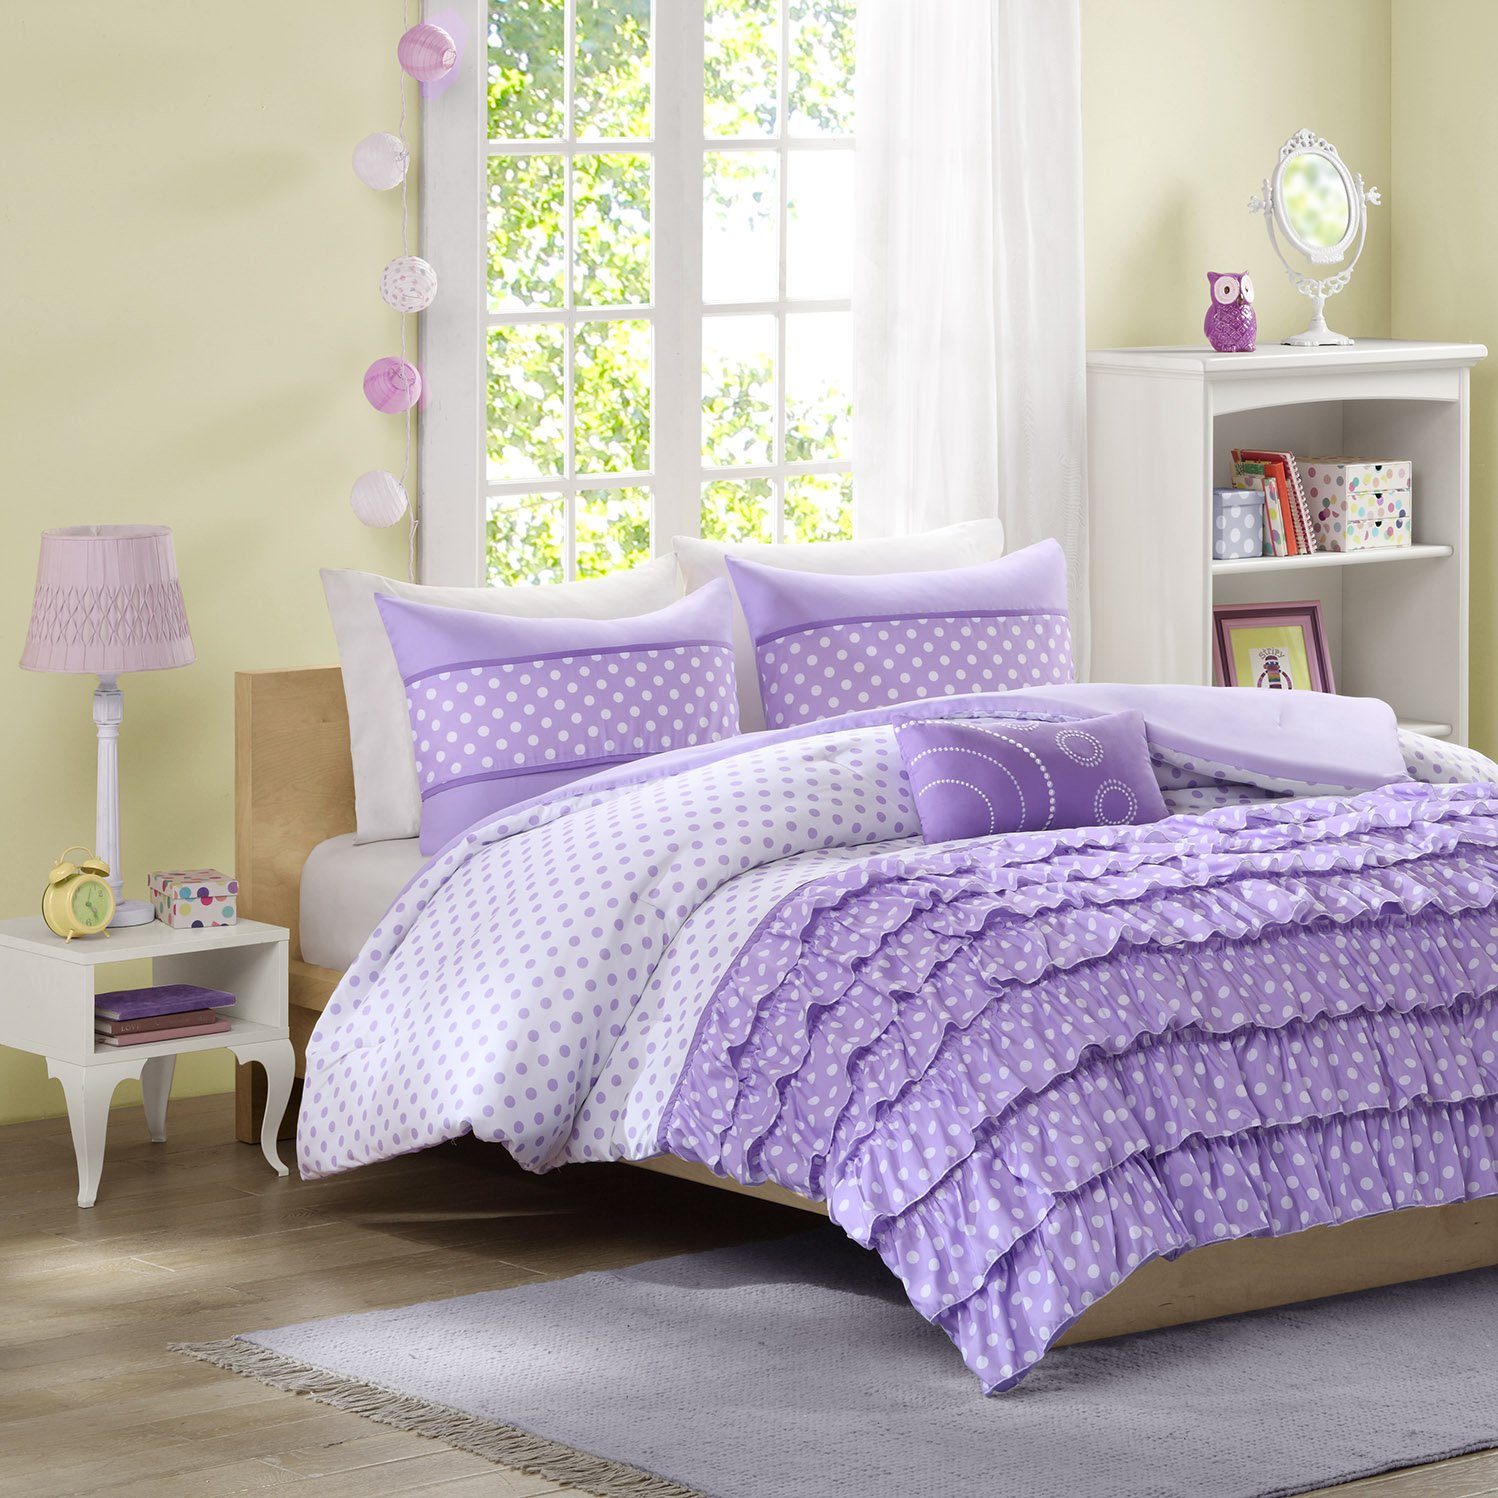 Mizone Morgan 4 Piece Comforter Set, Full/Queen, Purple